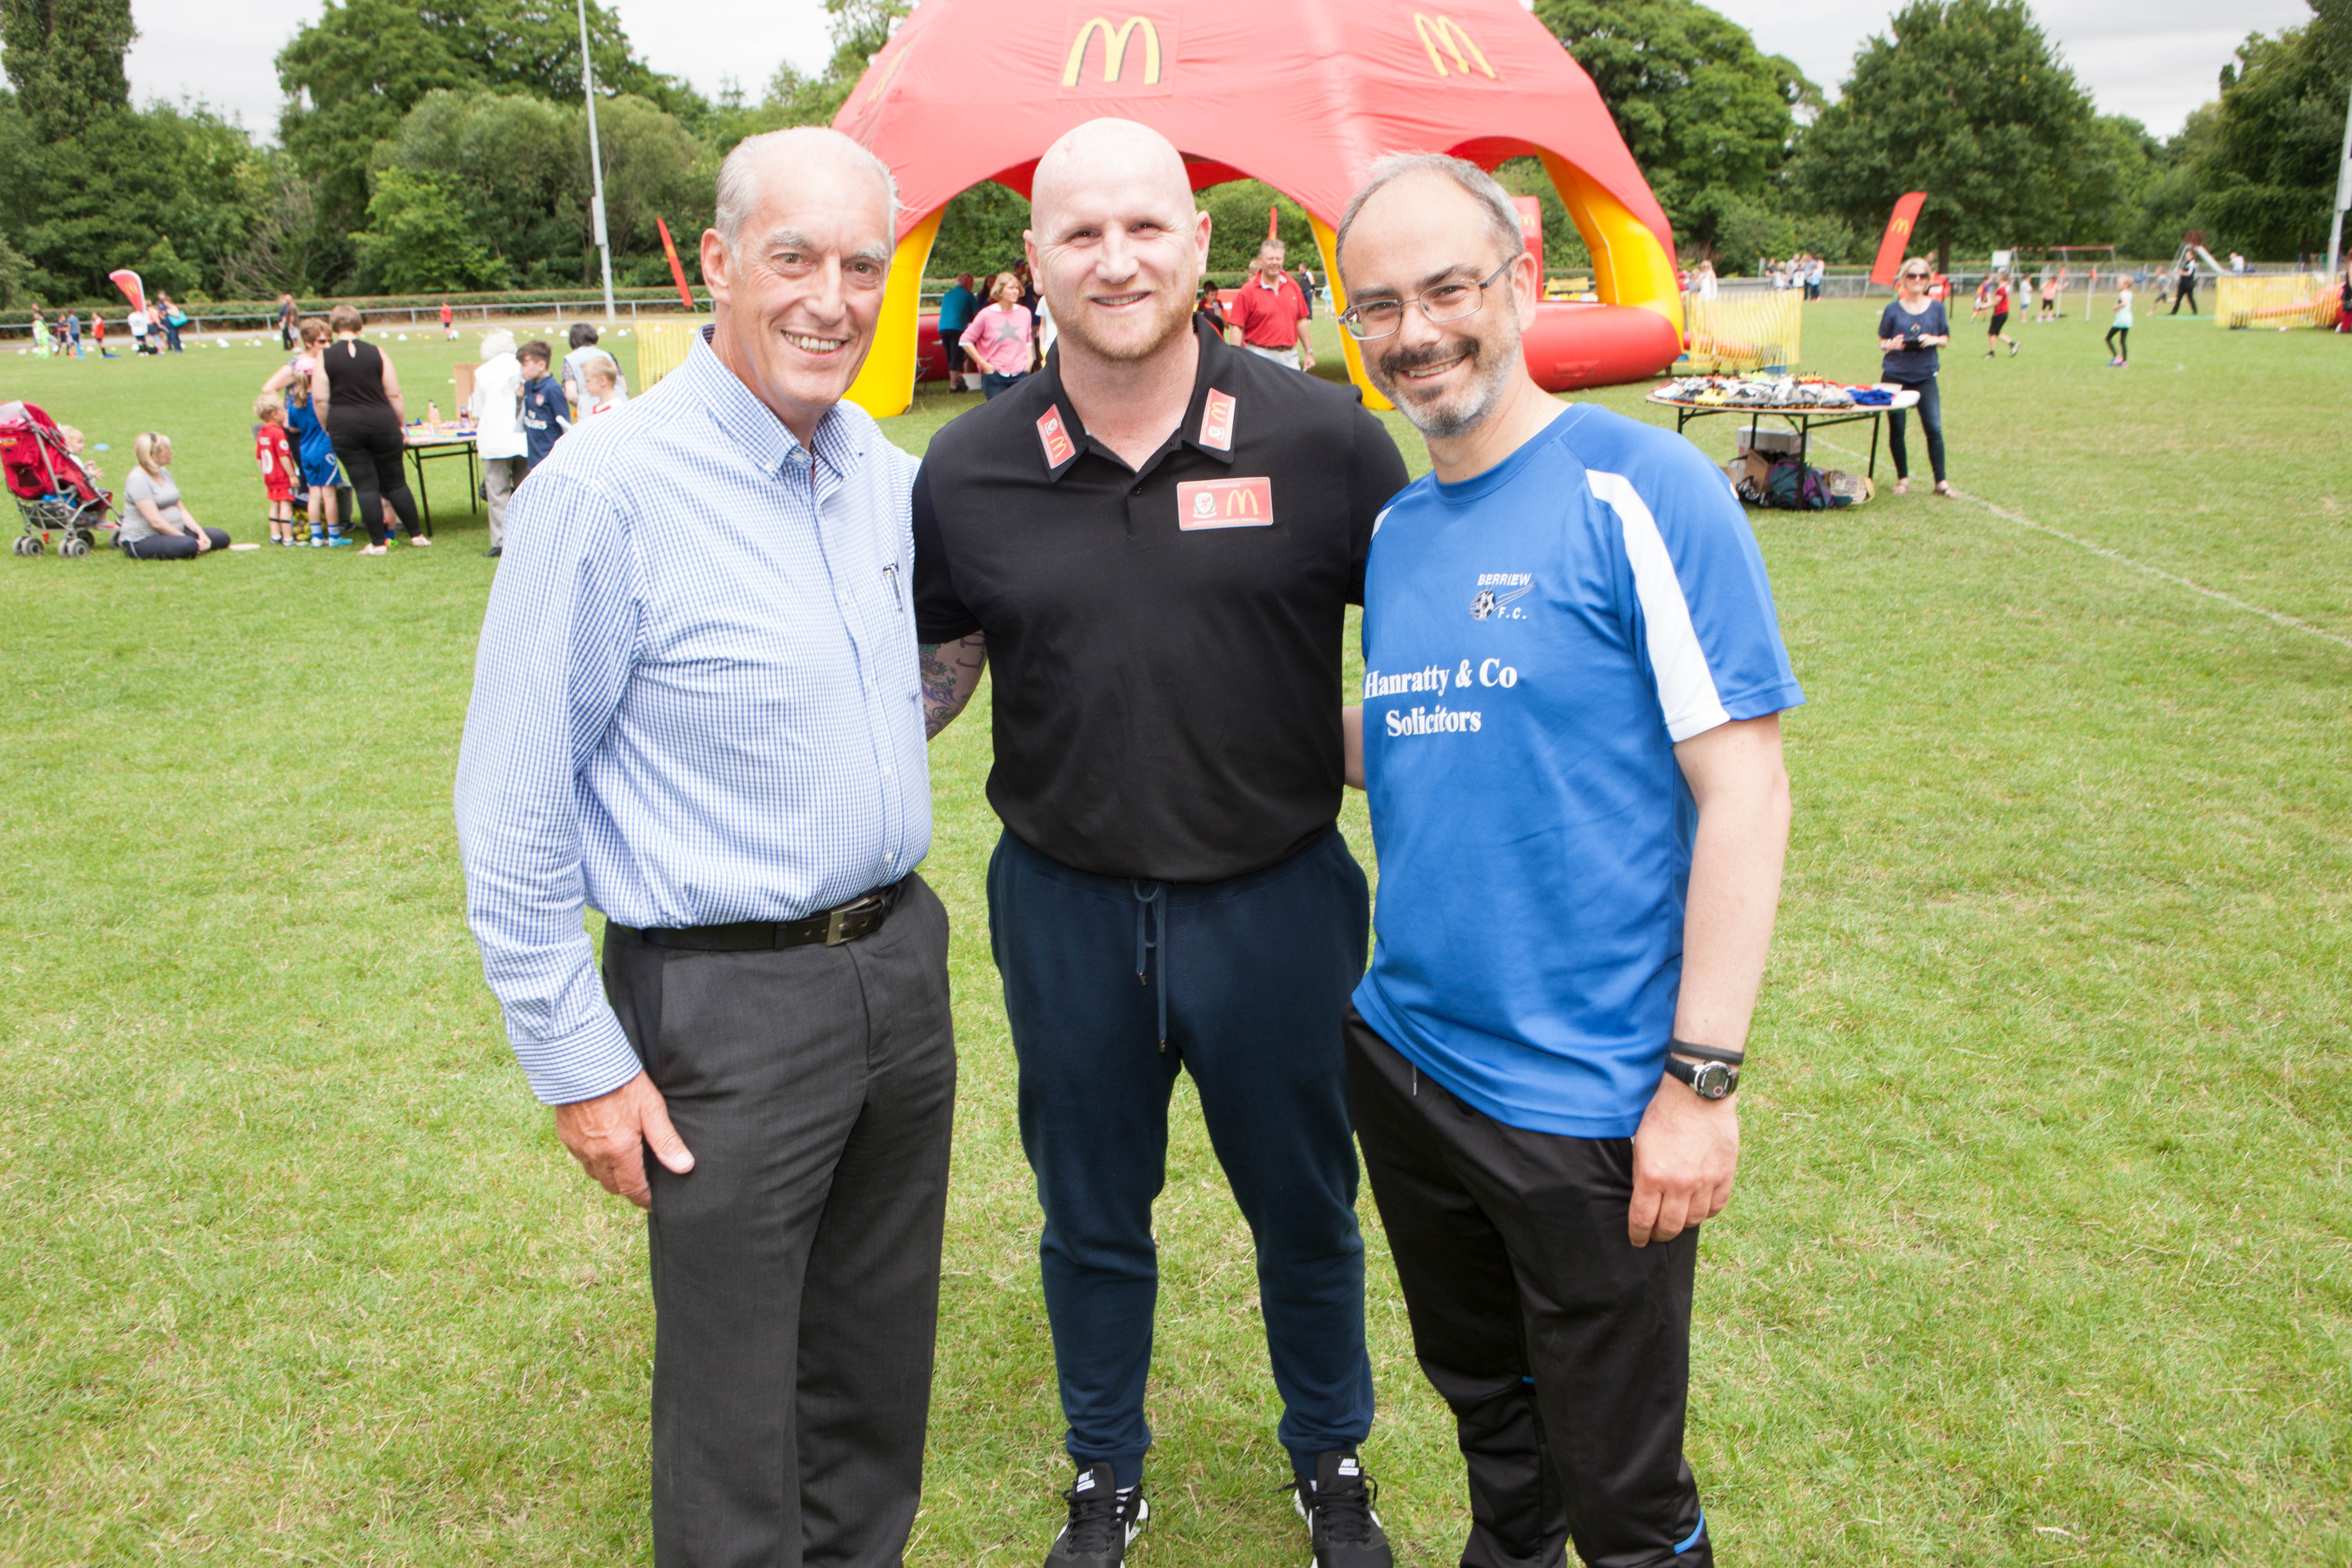 John Hartson visit delights youngsters at McDonald's Community Football Day